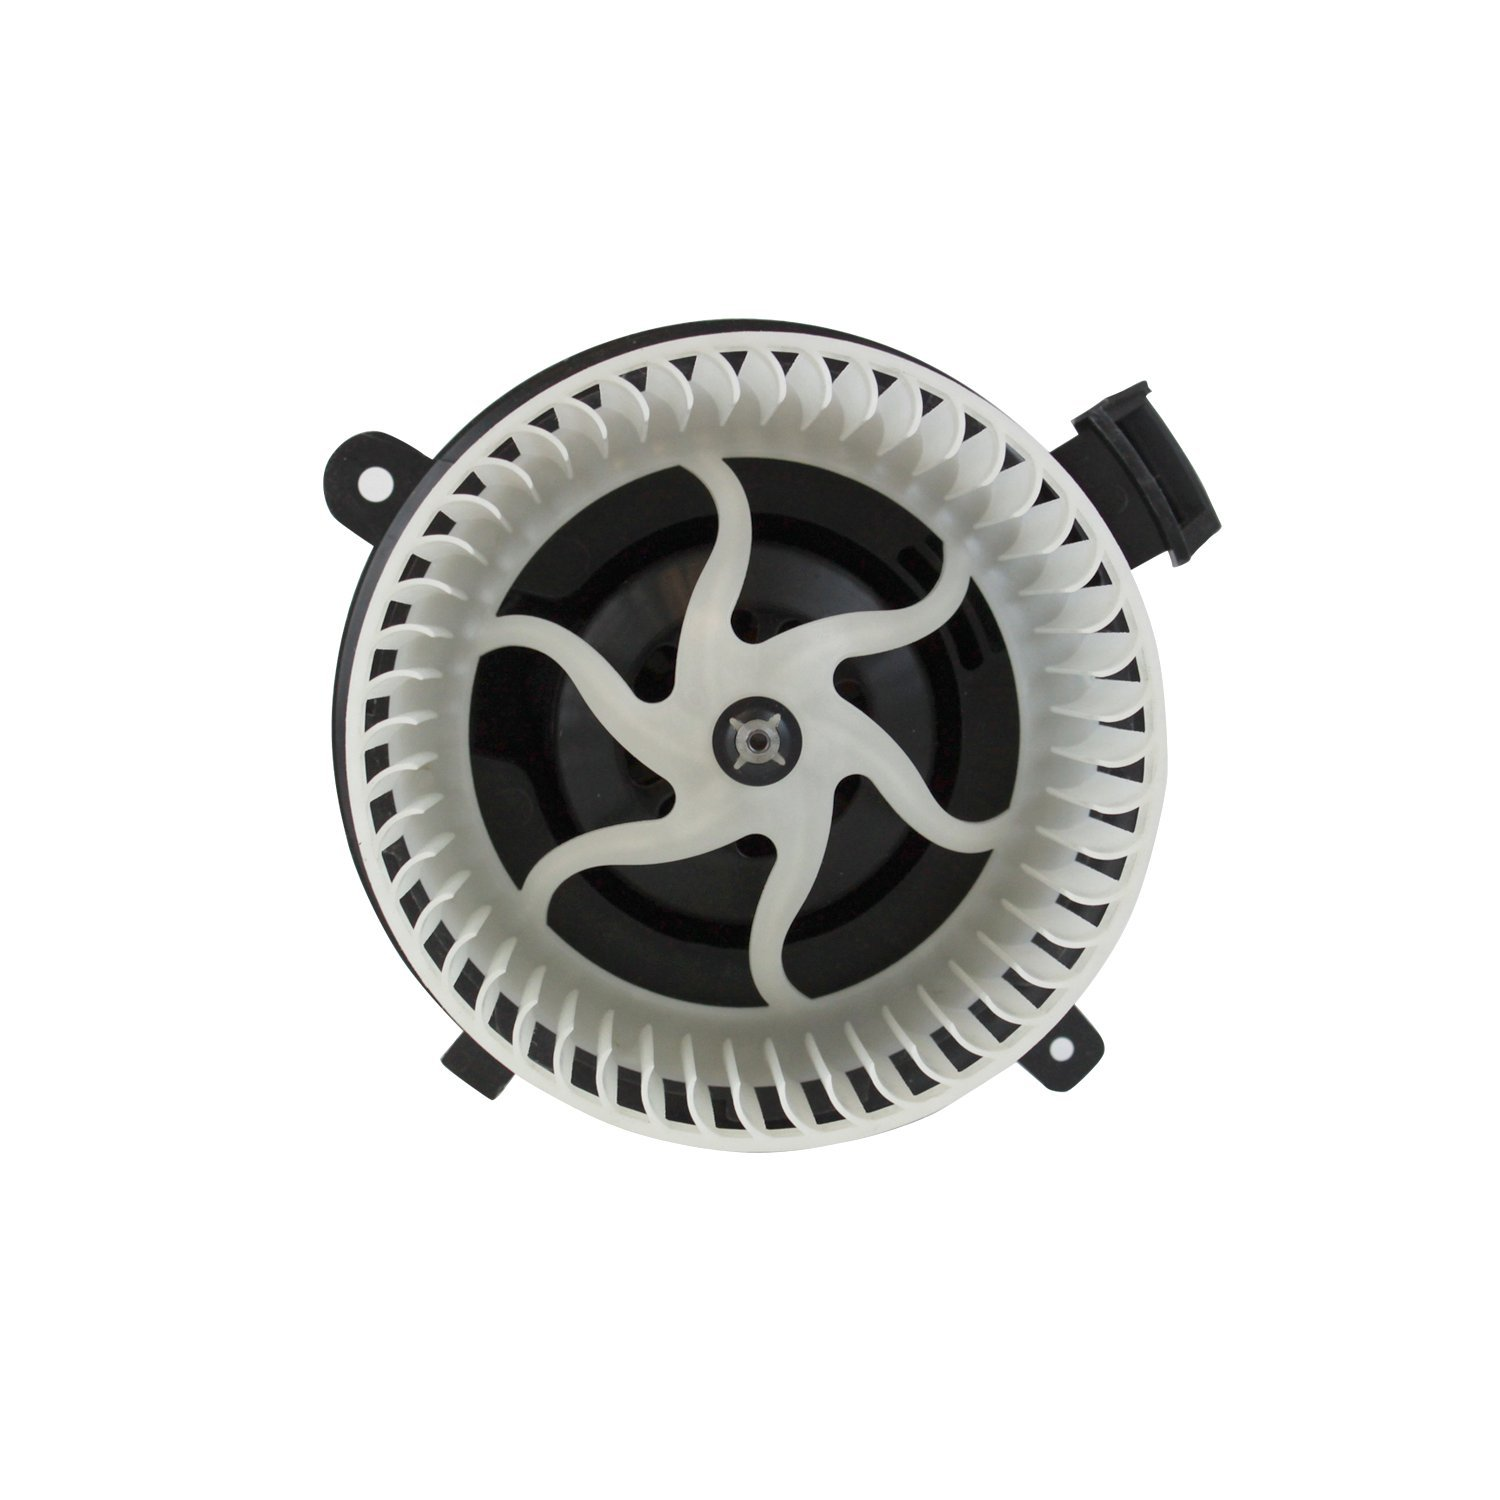 61S9YJsGqfL._SL1500_ tyc 700236 replacement blower assembly, blower motors amazon canada  at eliteediting.co